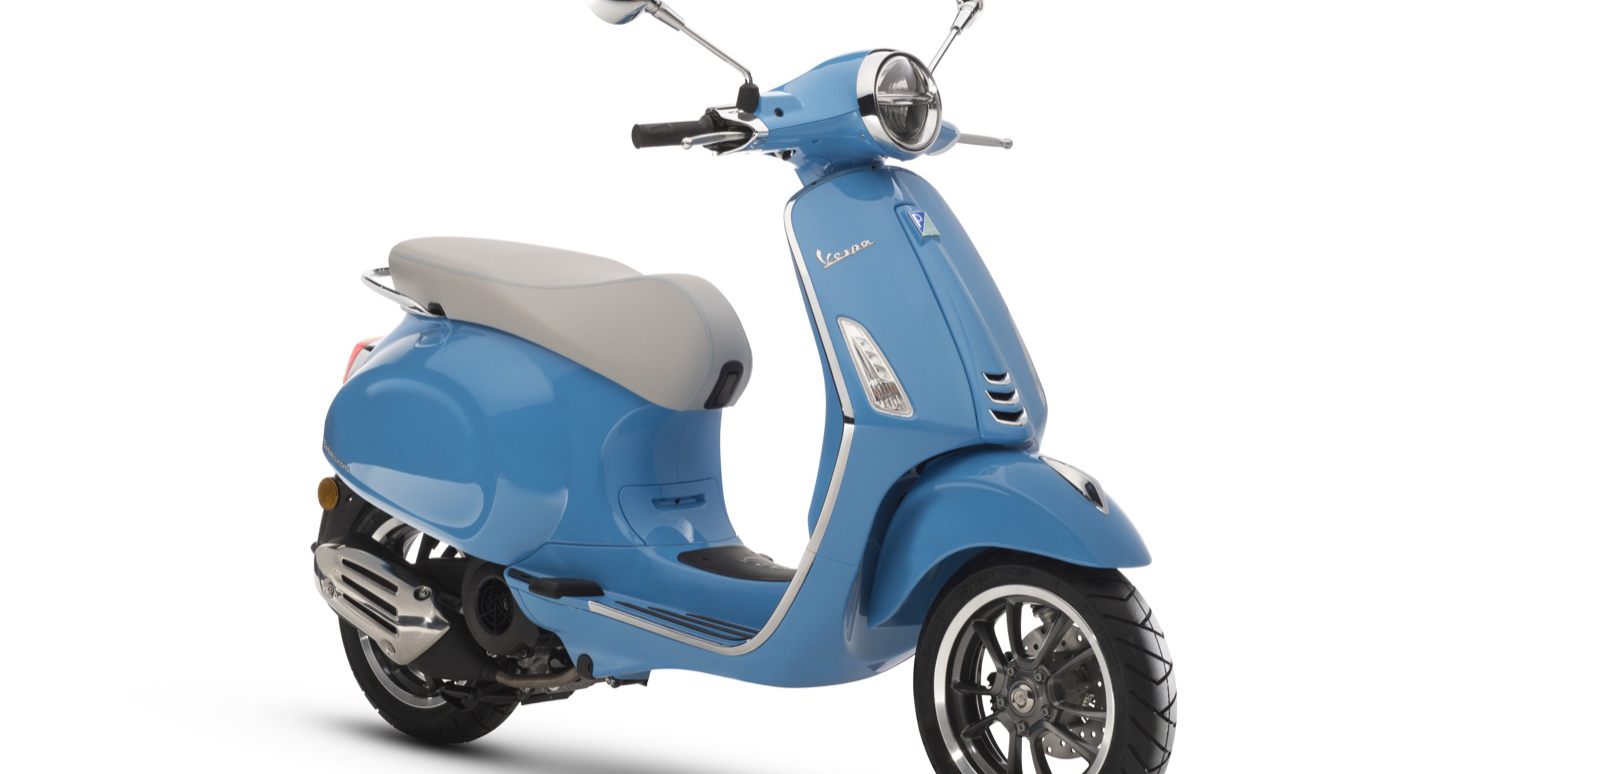 Vespa Showcases 2019 Se Models At Amerivespa Powersports Business